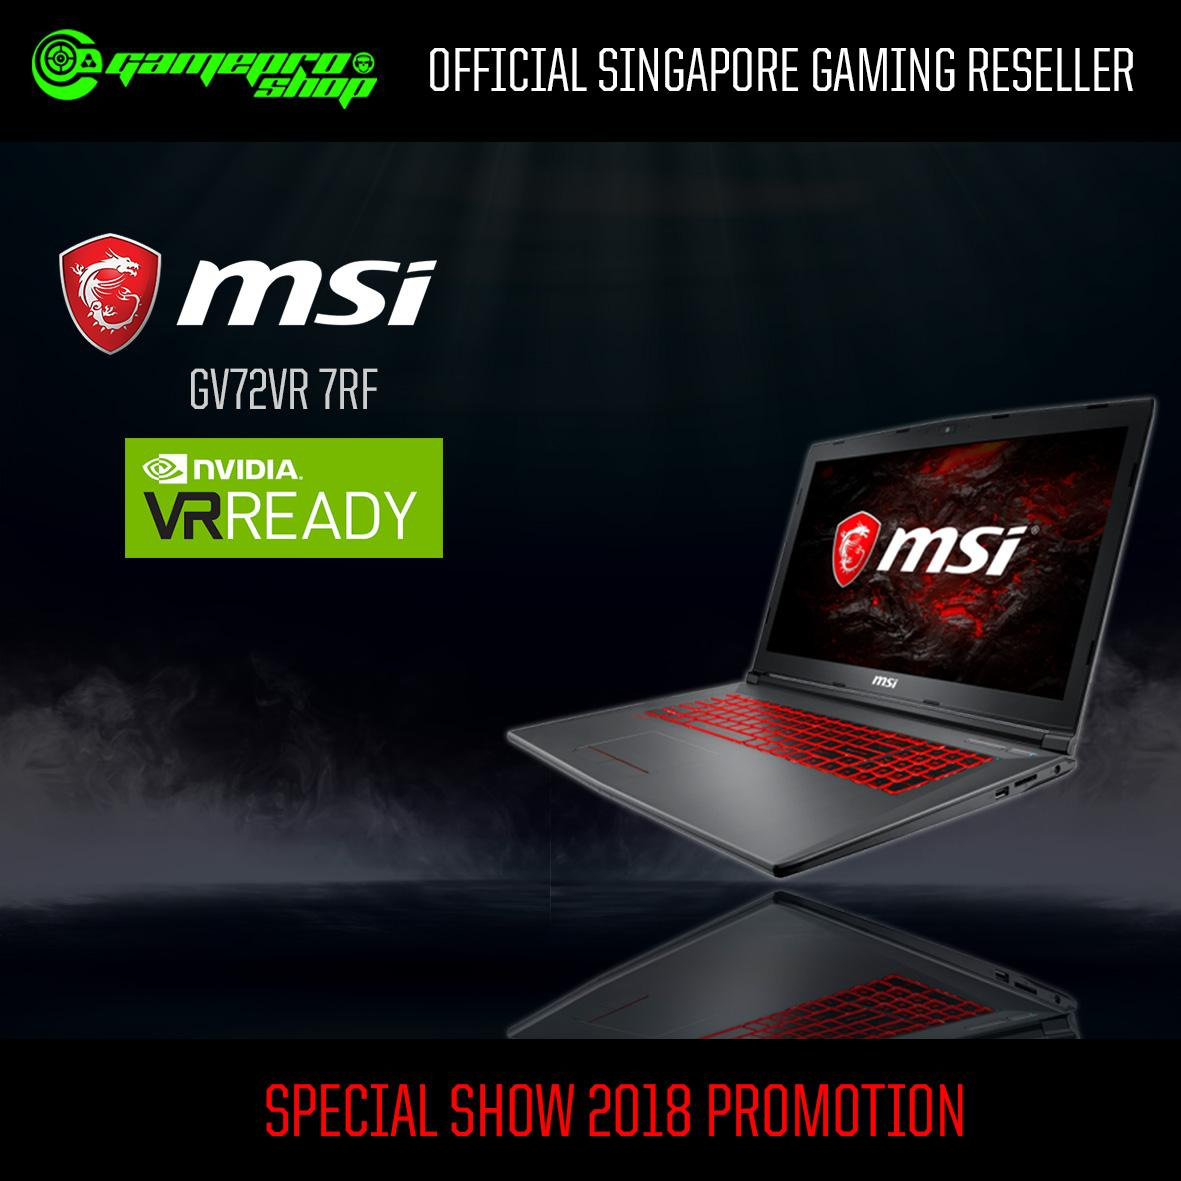 MSI GE73VR 7RF RAIDER (I7-7700HQ, 16GB RAM, GTX1060 6G, 1TB HDD + 128GB SSD) With 120Hz *COMEX PROMO*